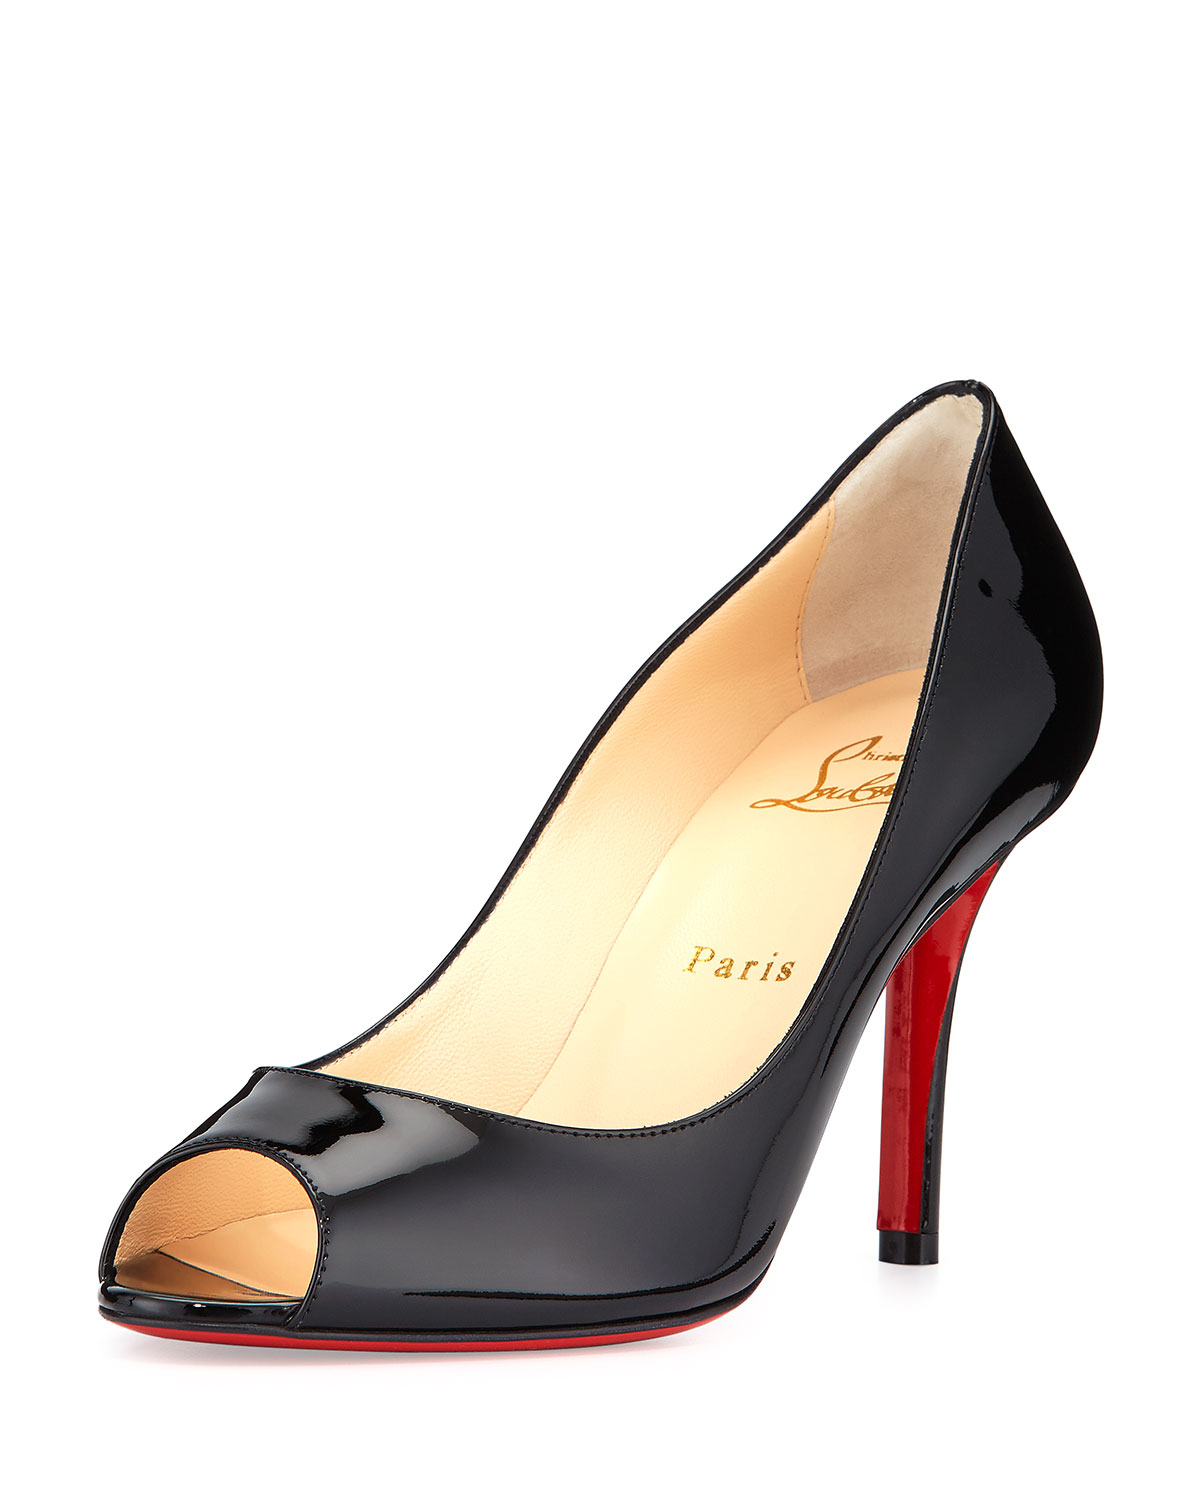 9f679dedb198 Lyst - Christian Louboutin Youyou Patent 85mm Red Sole Pump in Black